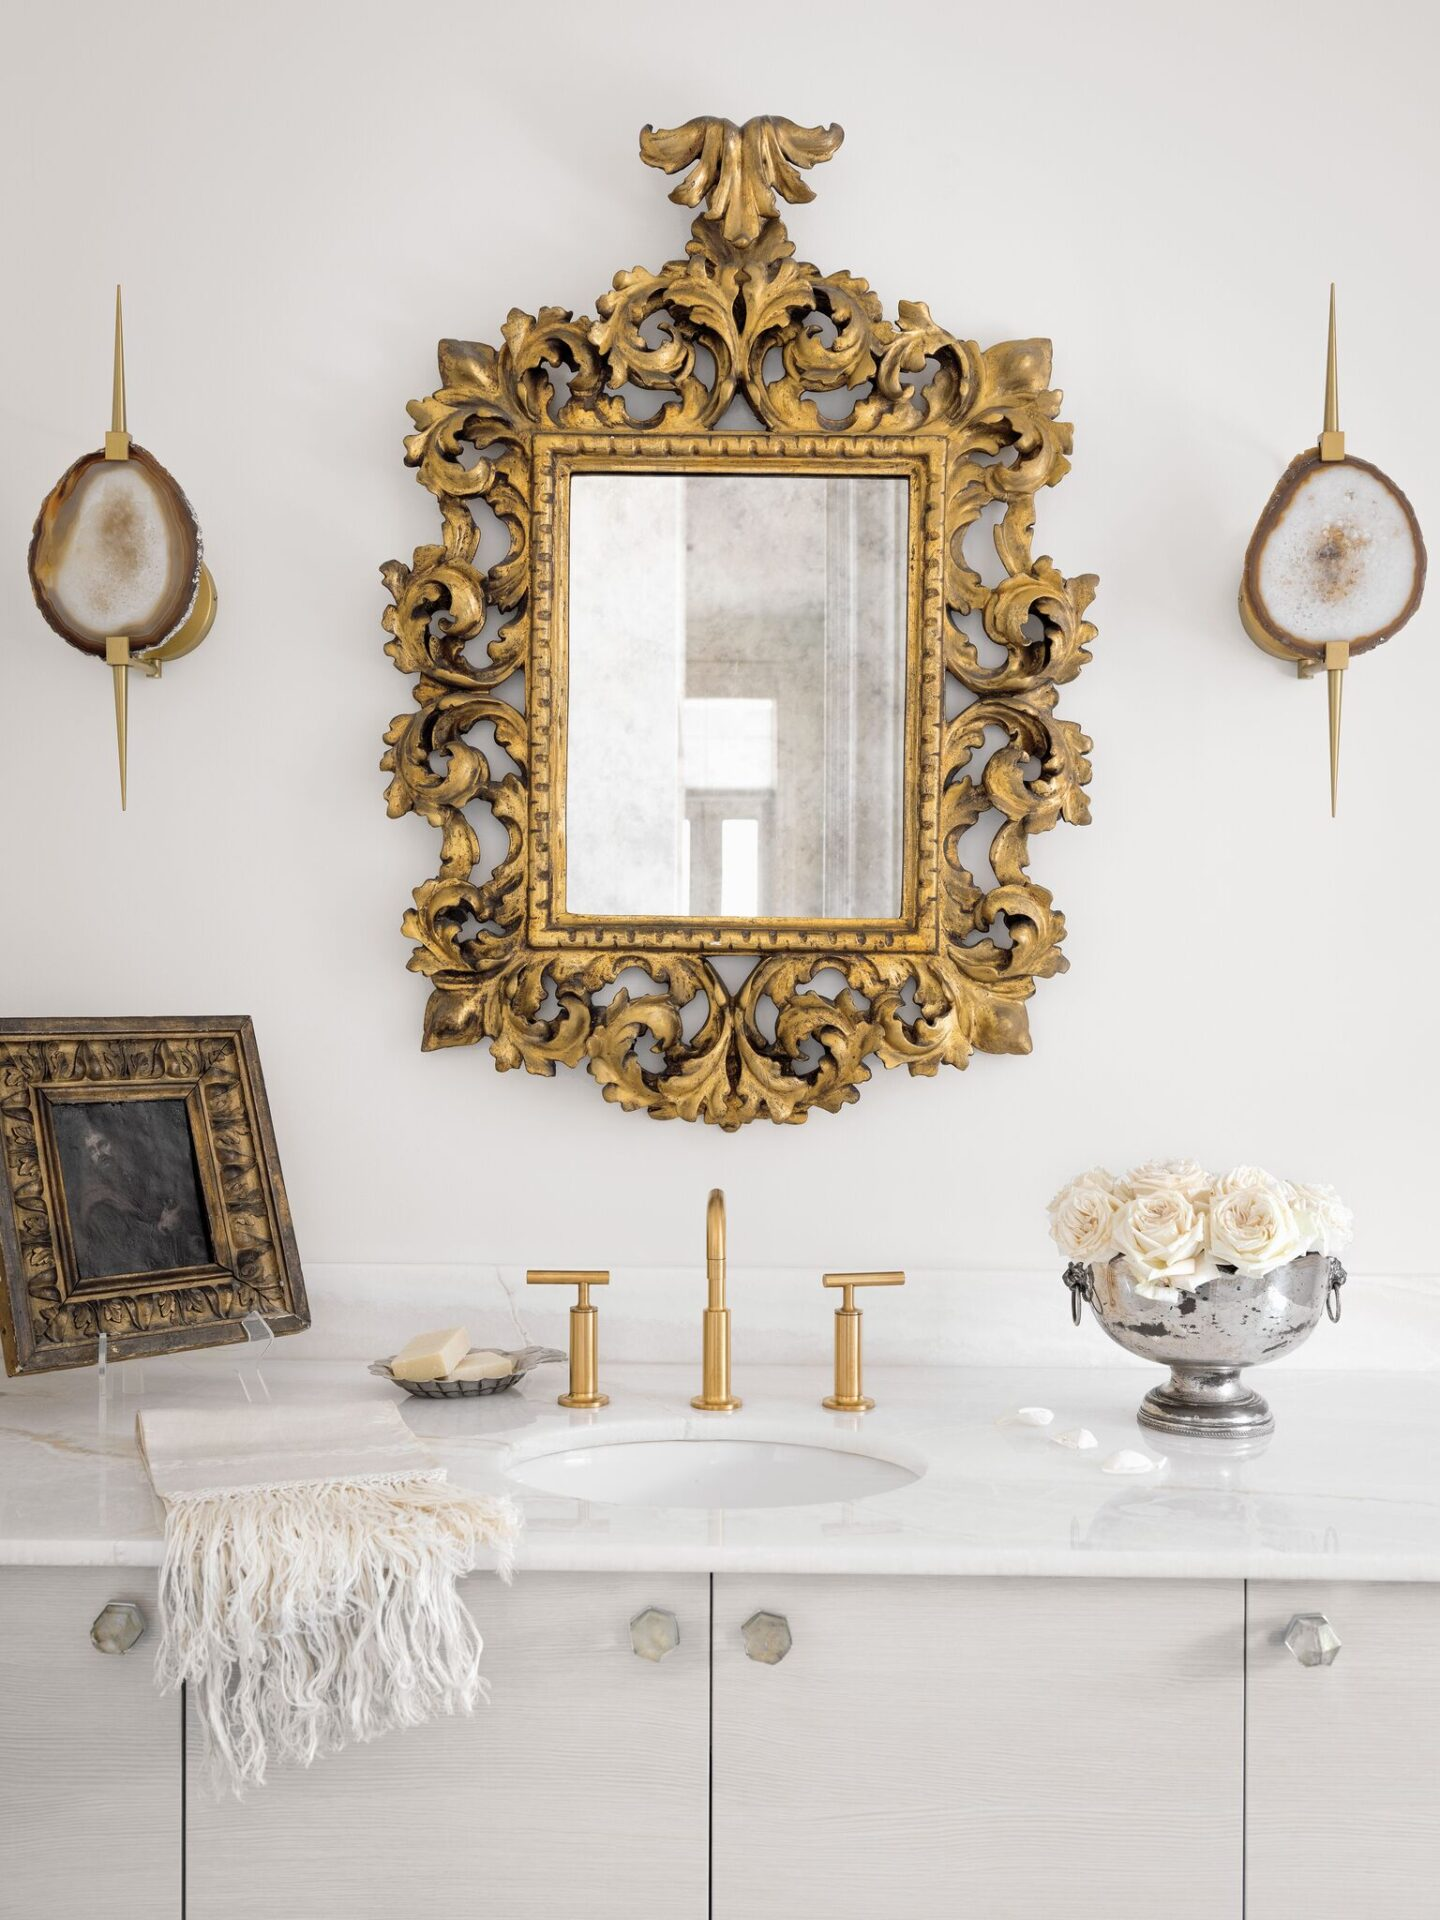 An eighteenth-century rococo Venetian mirror, contemporary onyx sconces, and gold toned fixtures harmonize in a stunningly elegant and luxurious bathroom design. #tarashaw #bathroom #interiordesign #antiques #oldworldstyle #whitebathroom #luxuriousbathroom